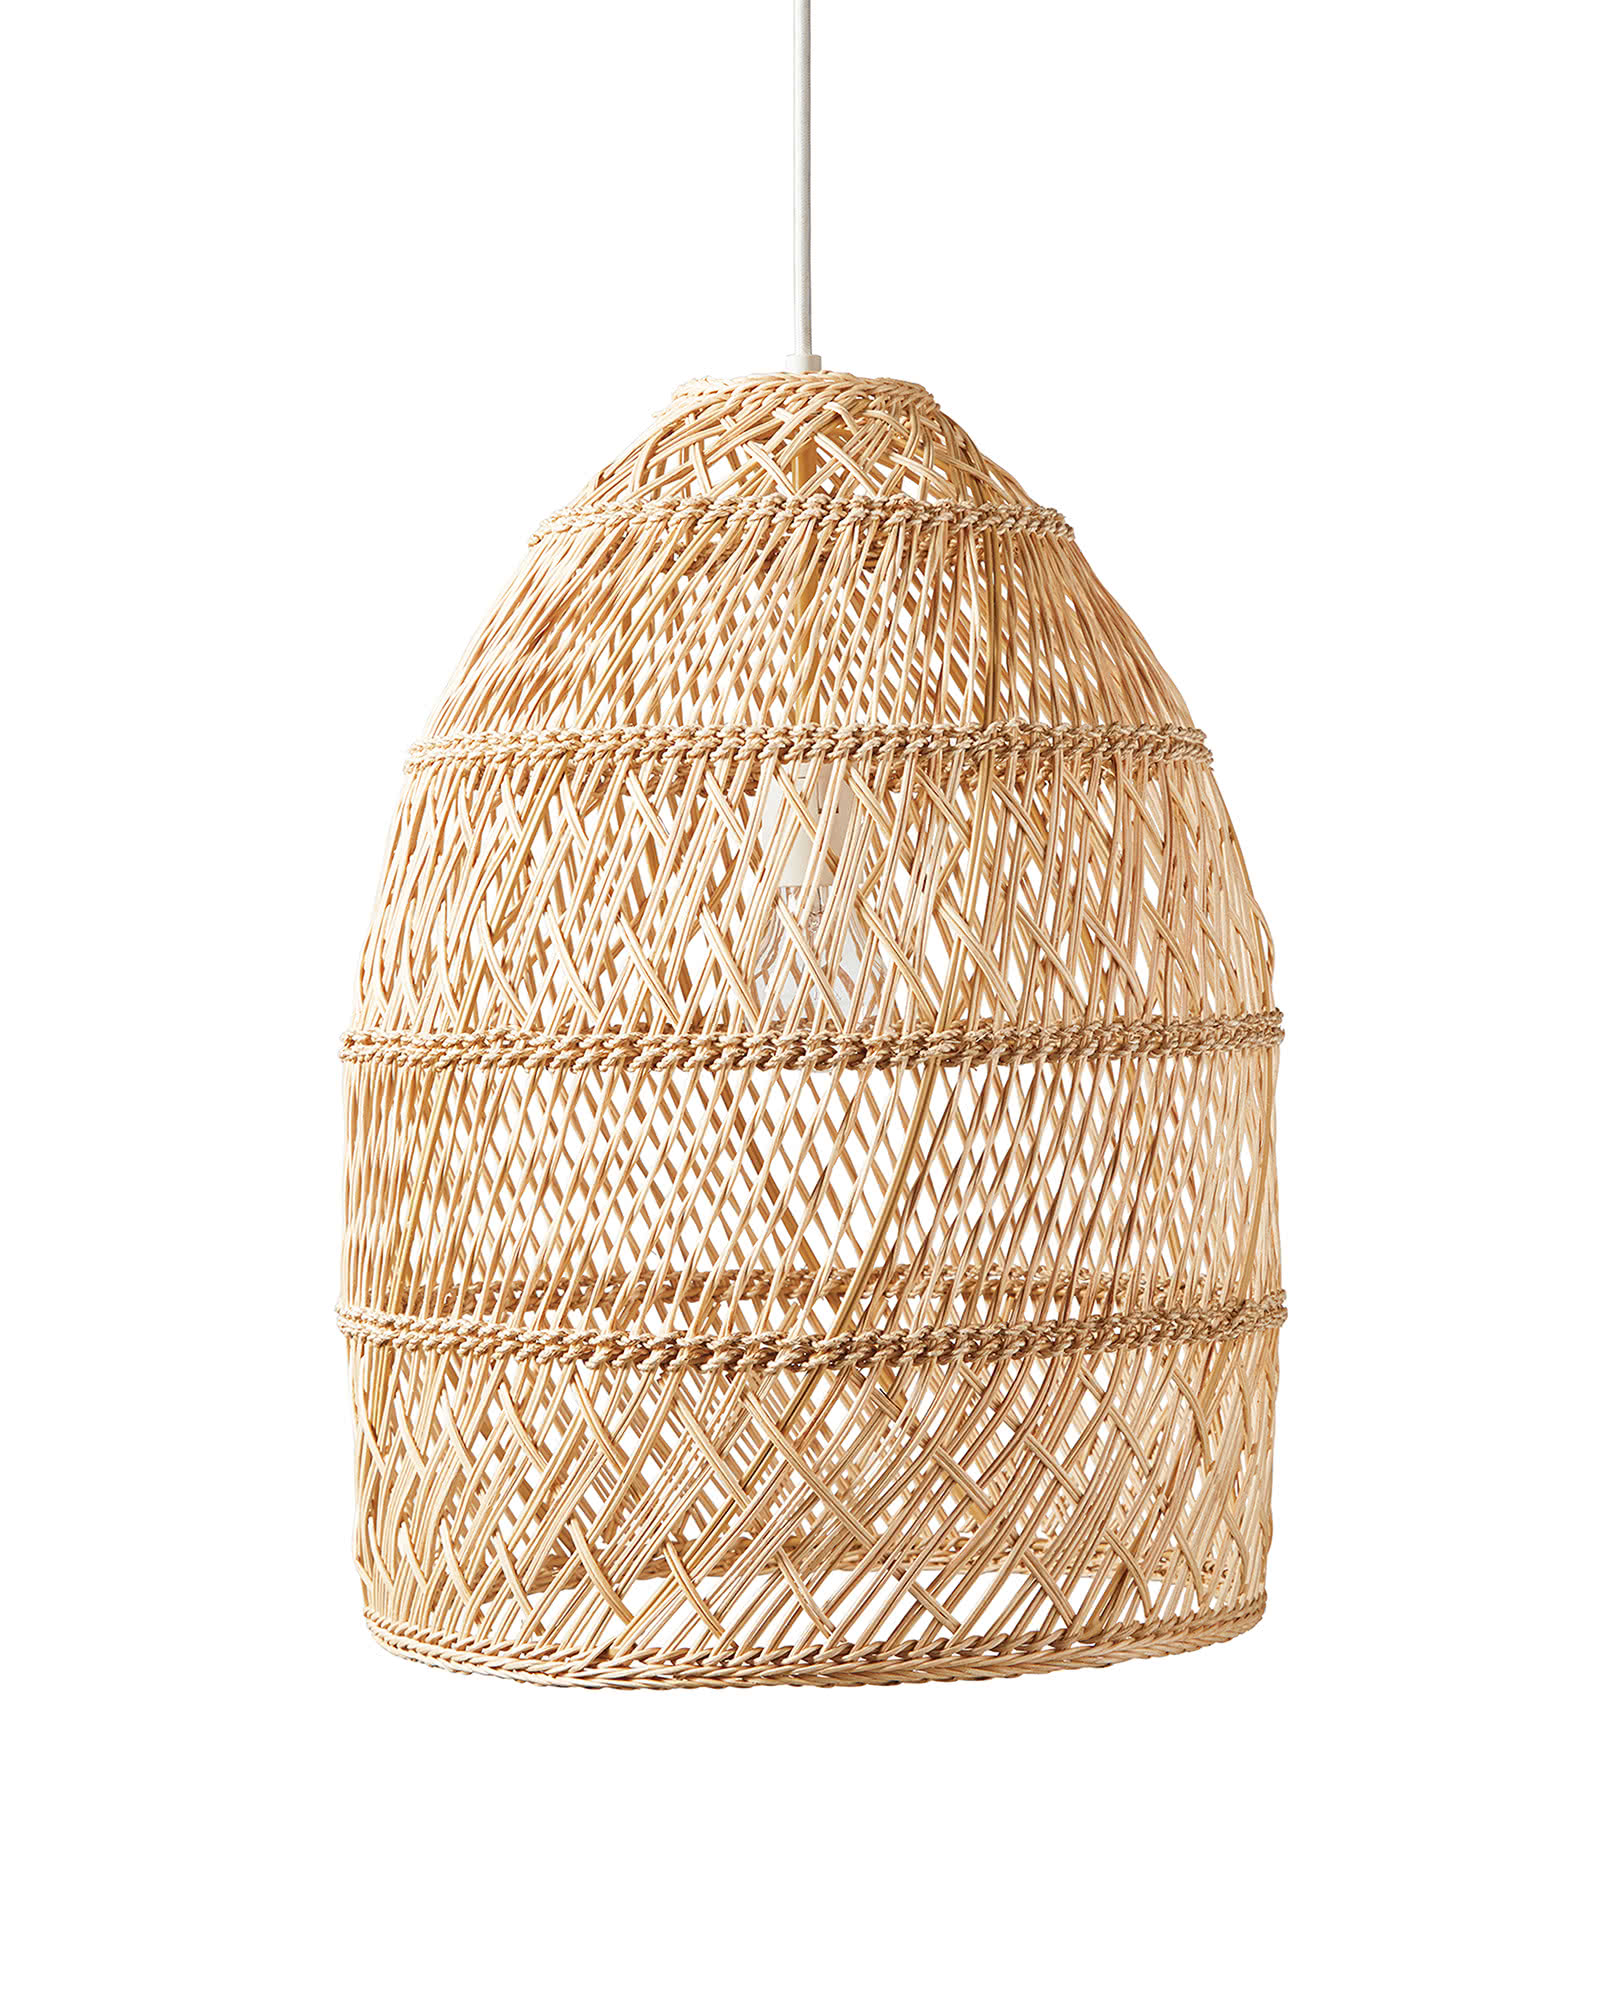 Wicker bell pendant (Headlands) from Serena & Lily